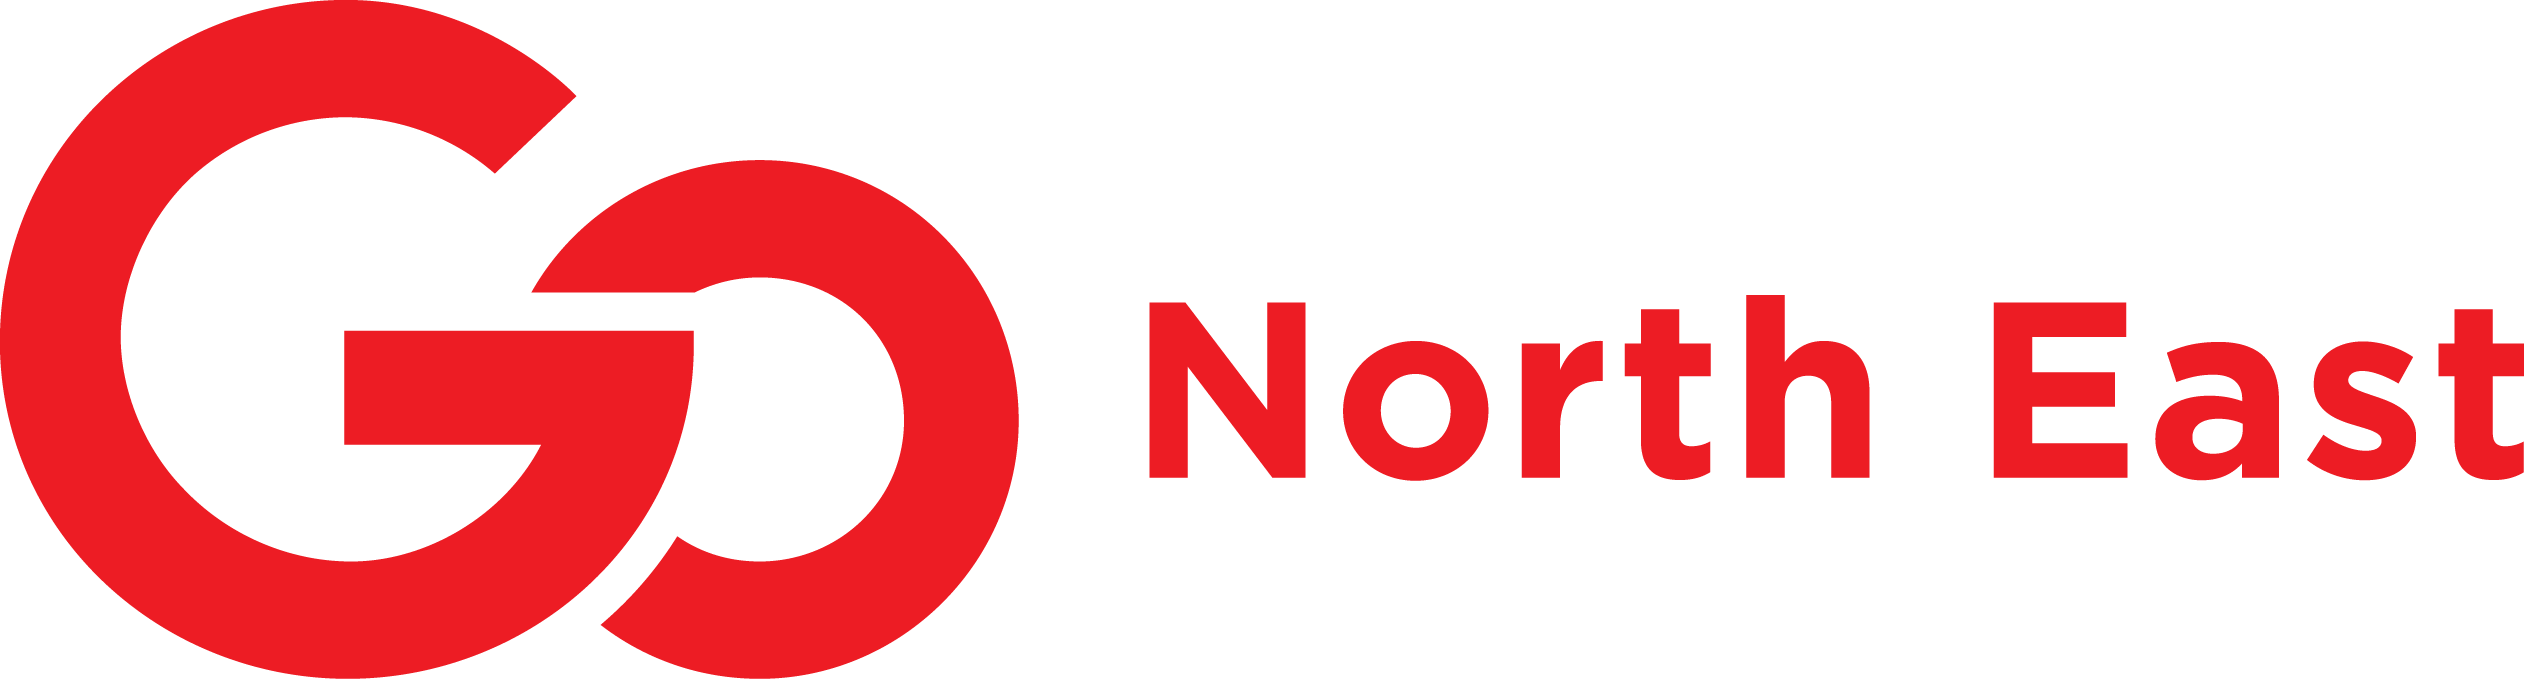 Go North East Logo